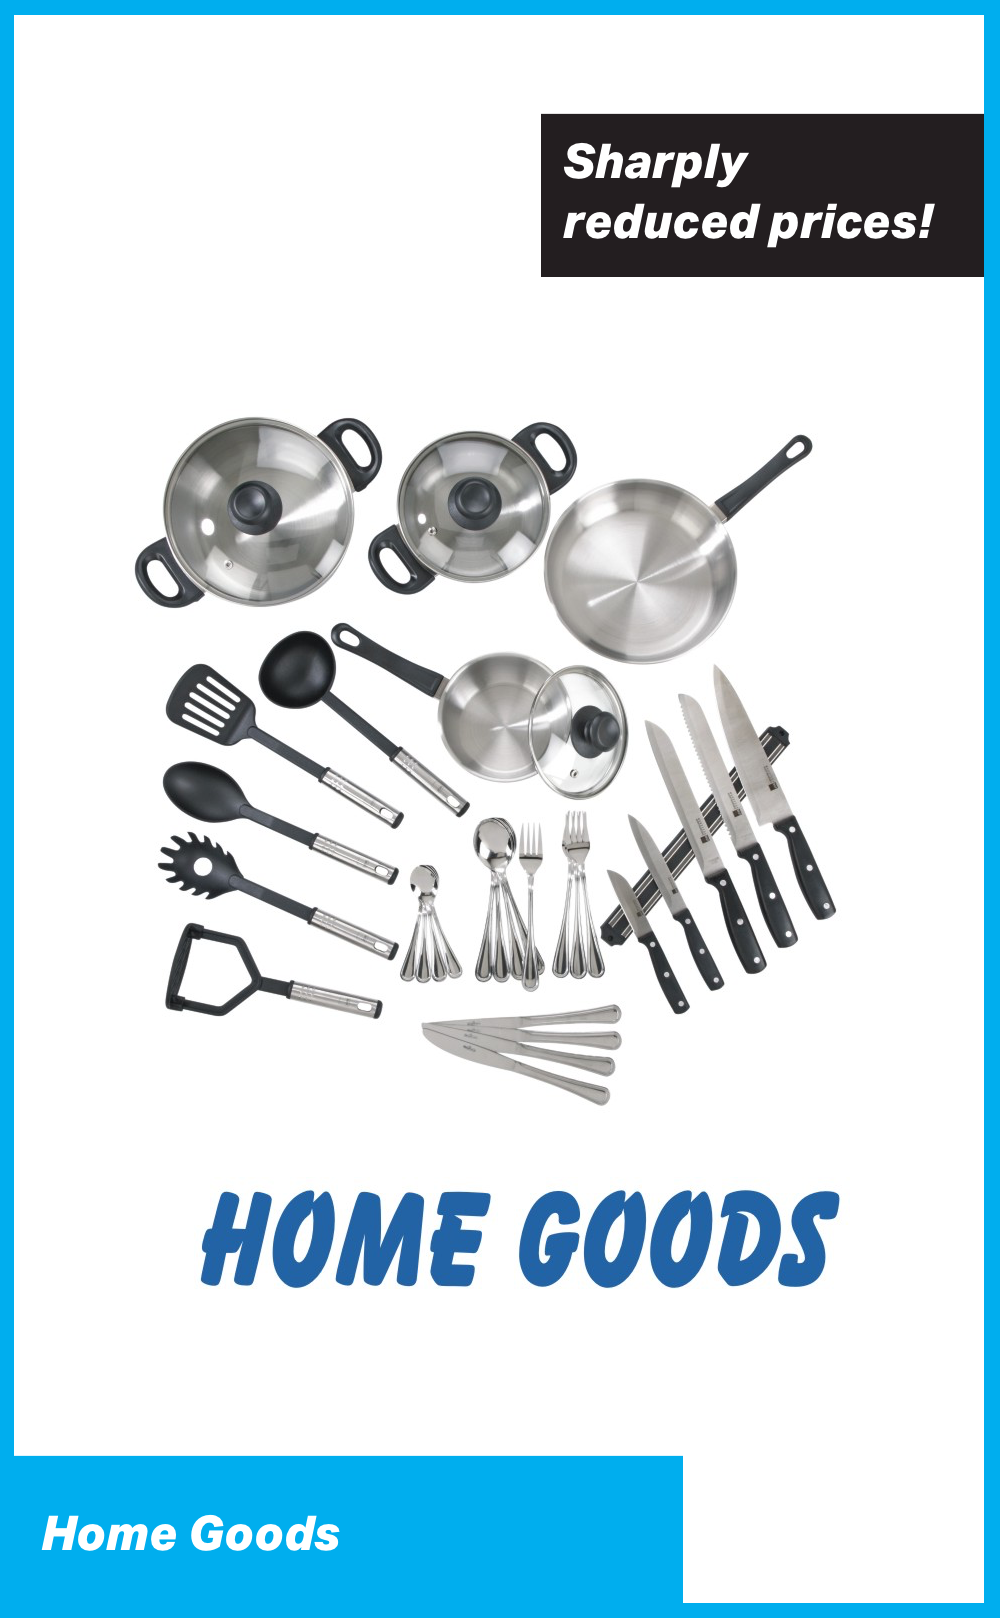 Home Goods at Sharply Reduced Prices!